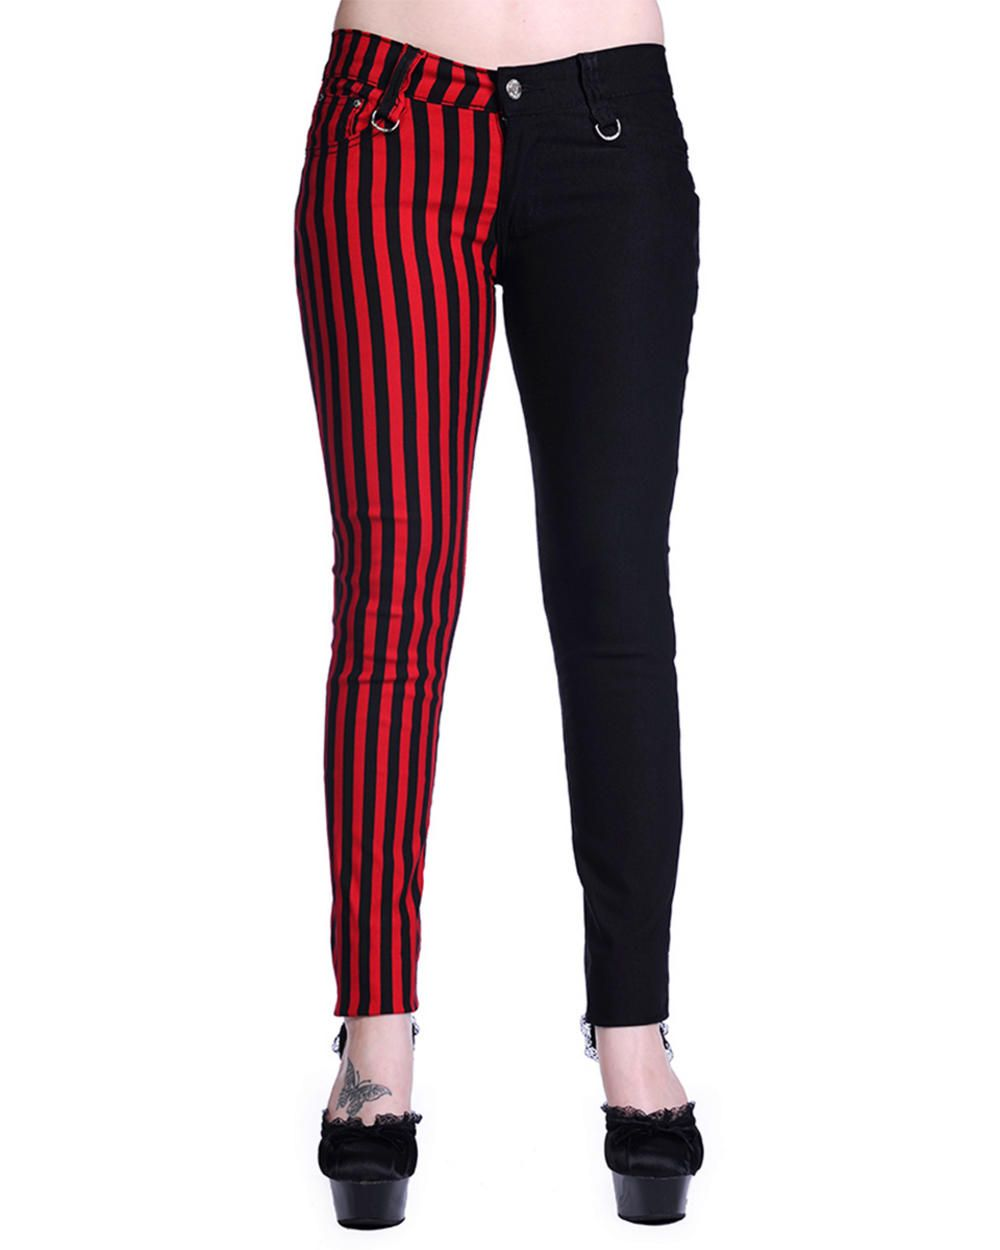 5f49b8ccc6ea7 BANNED BLACK RED STRIPE SPLIT LEG SKINNY JEANS | Spikes, chains, and ...